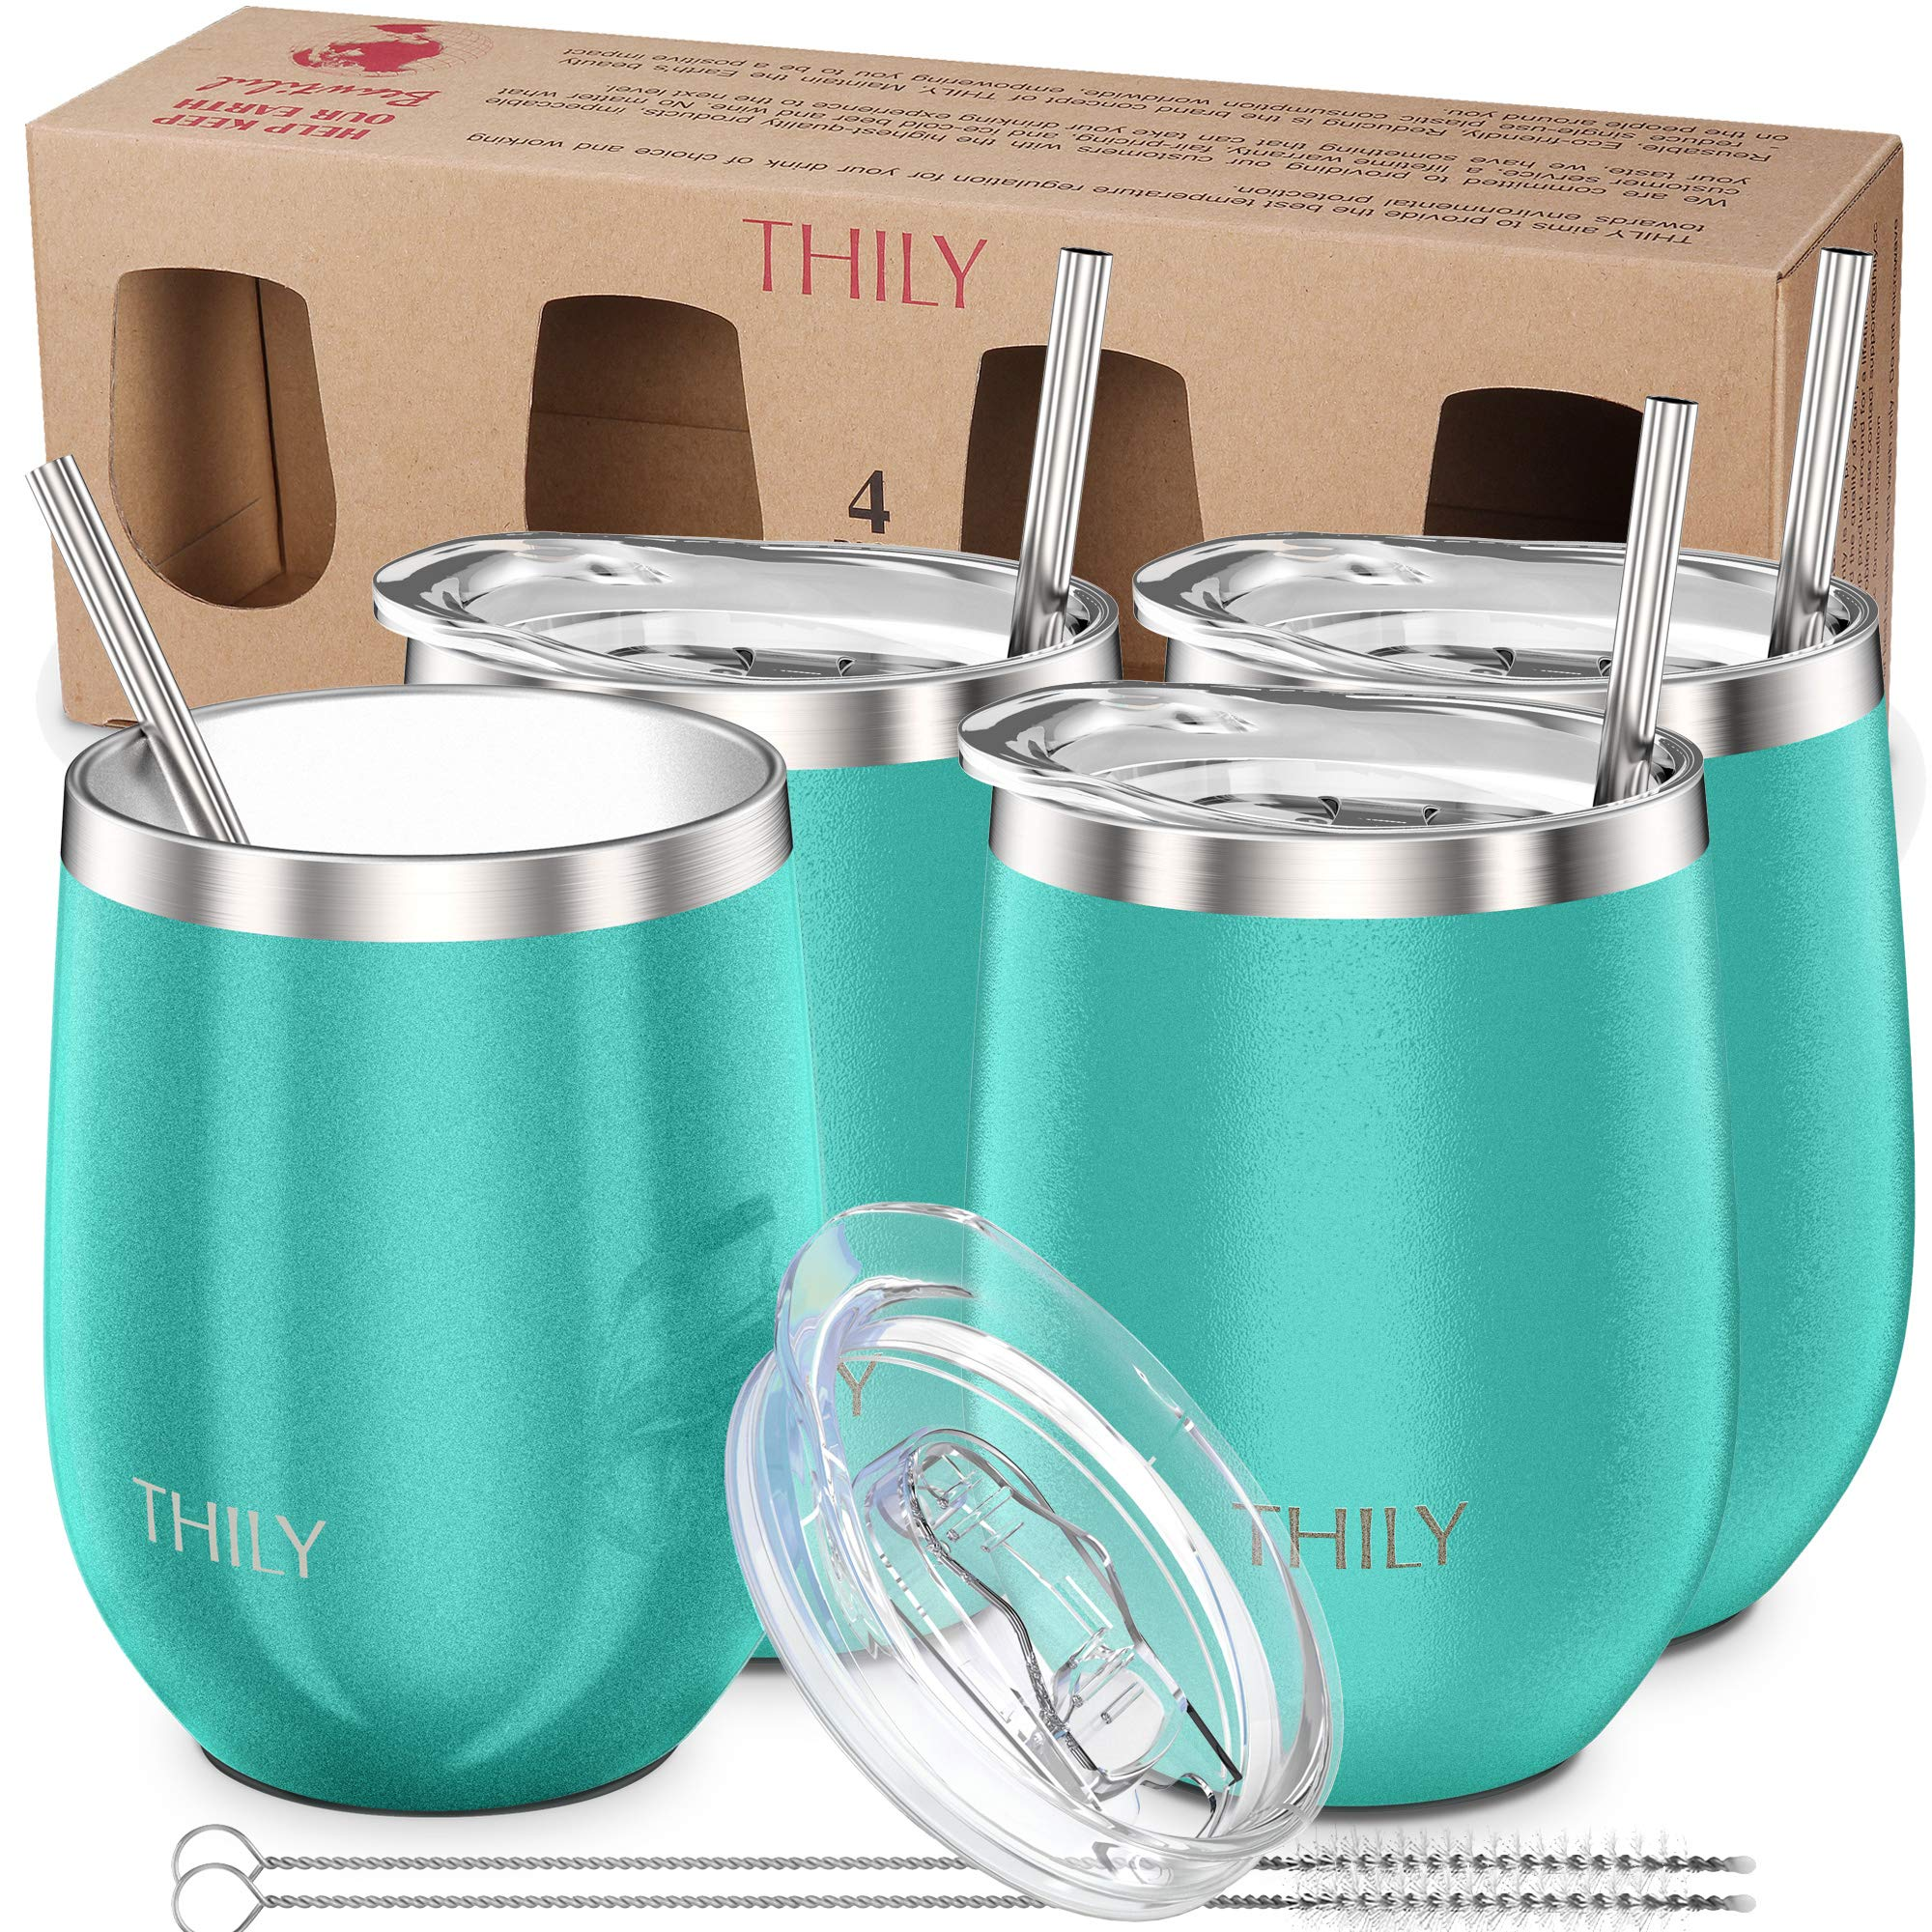 Stainless Steel Stemless Wine Glasses - THILY Triple Vacuum Insulated Cute Travel Tumbler Cup with Spill-Proof Lid, Reusable Straw, Keep Cold & Hot for Wine, Coffee, Birthday Xmas Gift, 4 Pack, Teal by THILY (Image #1)